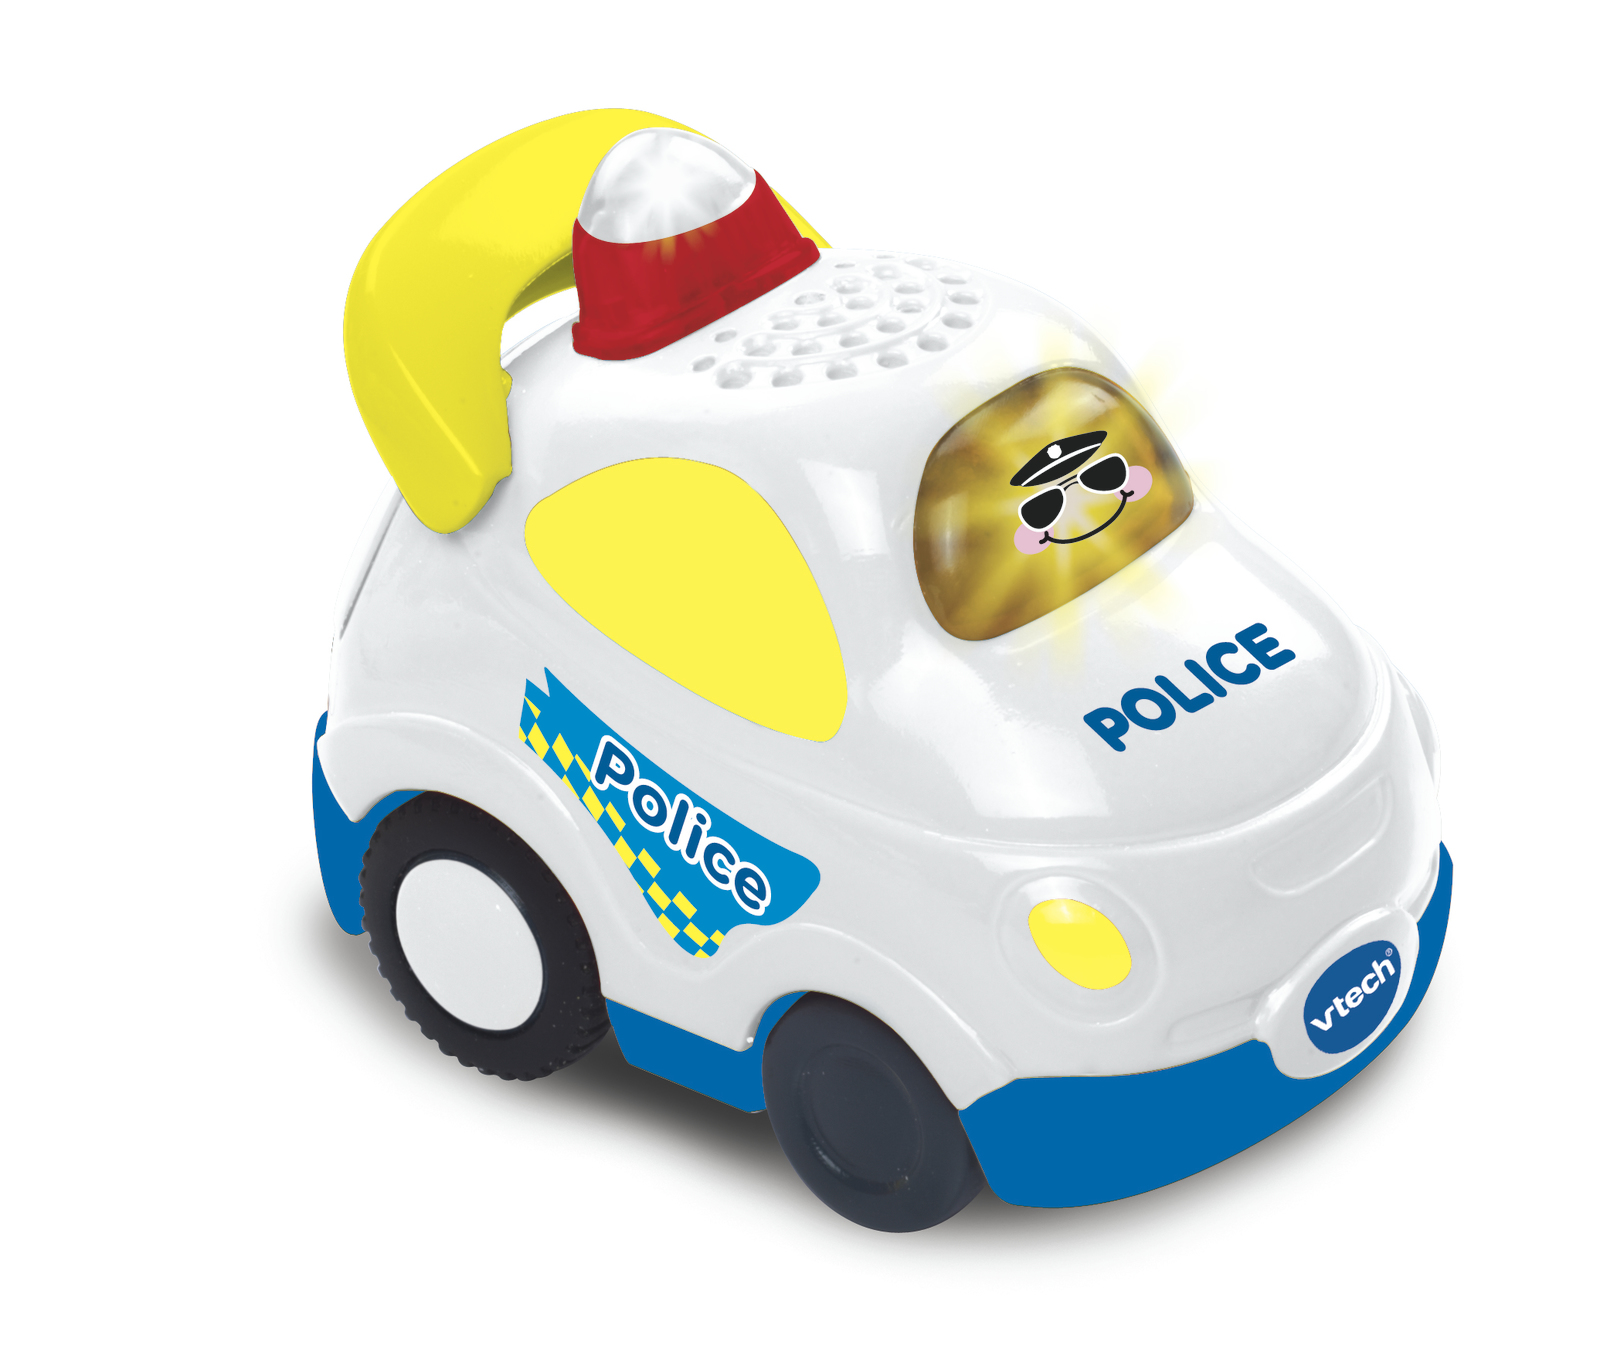 Vtech Toot Toot Drivers: Remote Control Police Car image